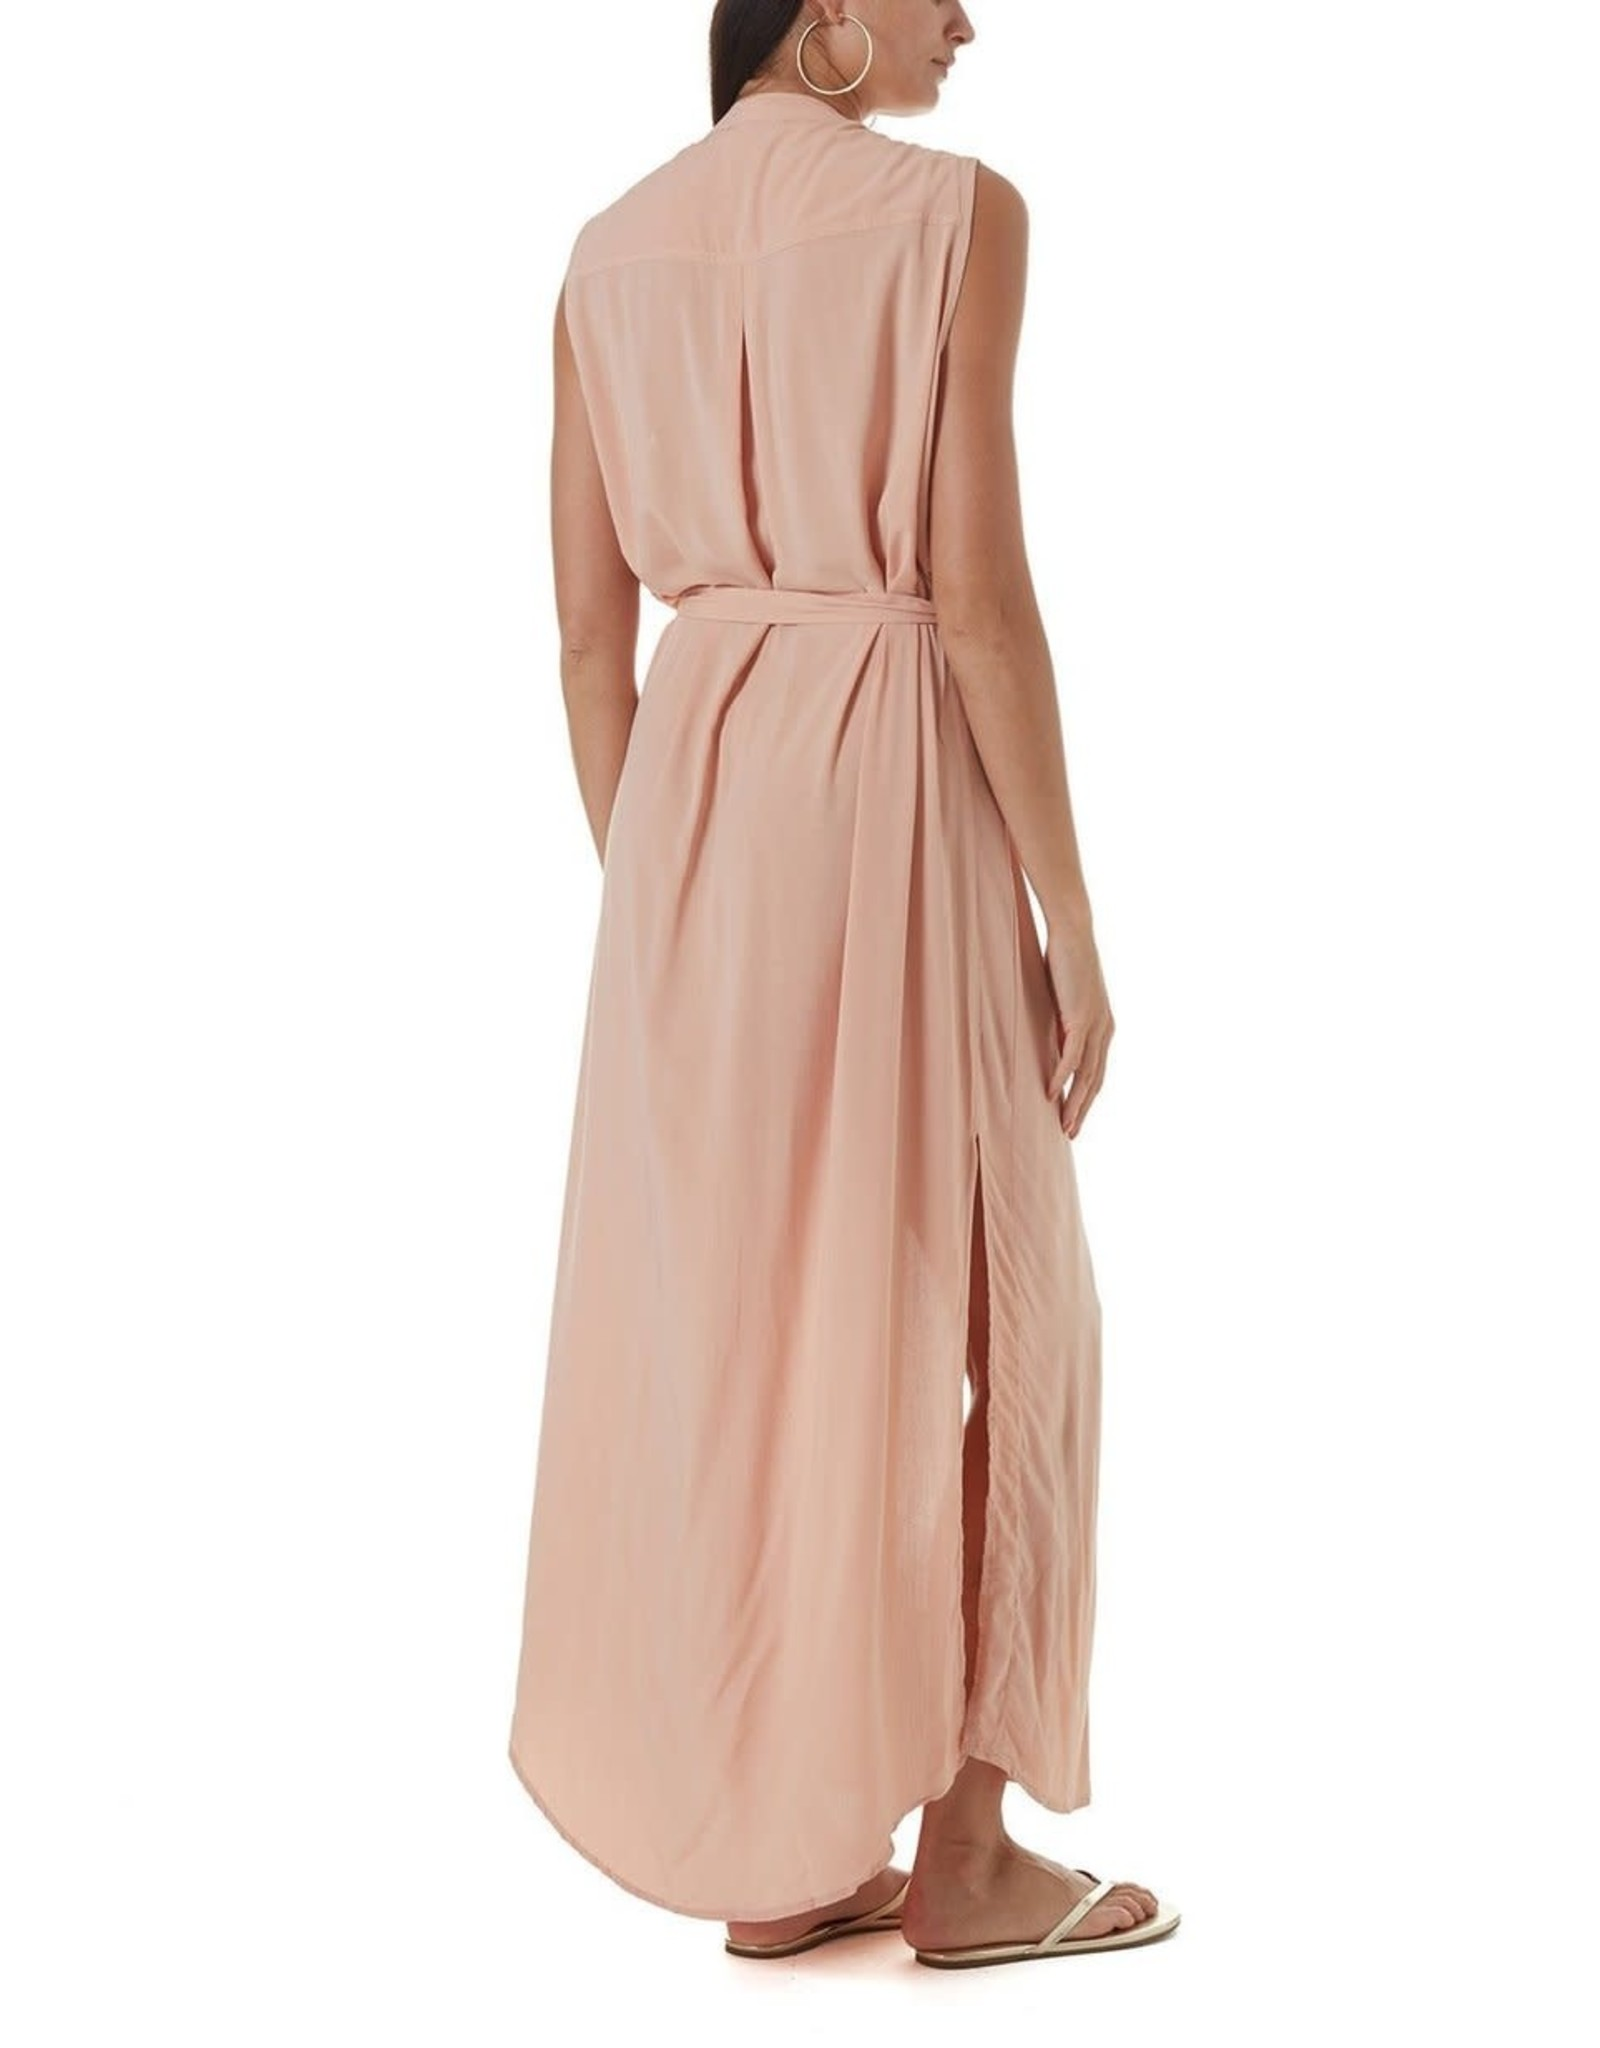 Melissa Odabash Charlene Short Sleeved Long Dress